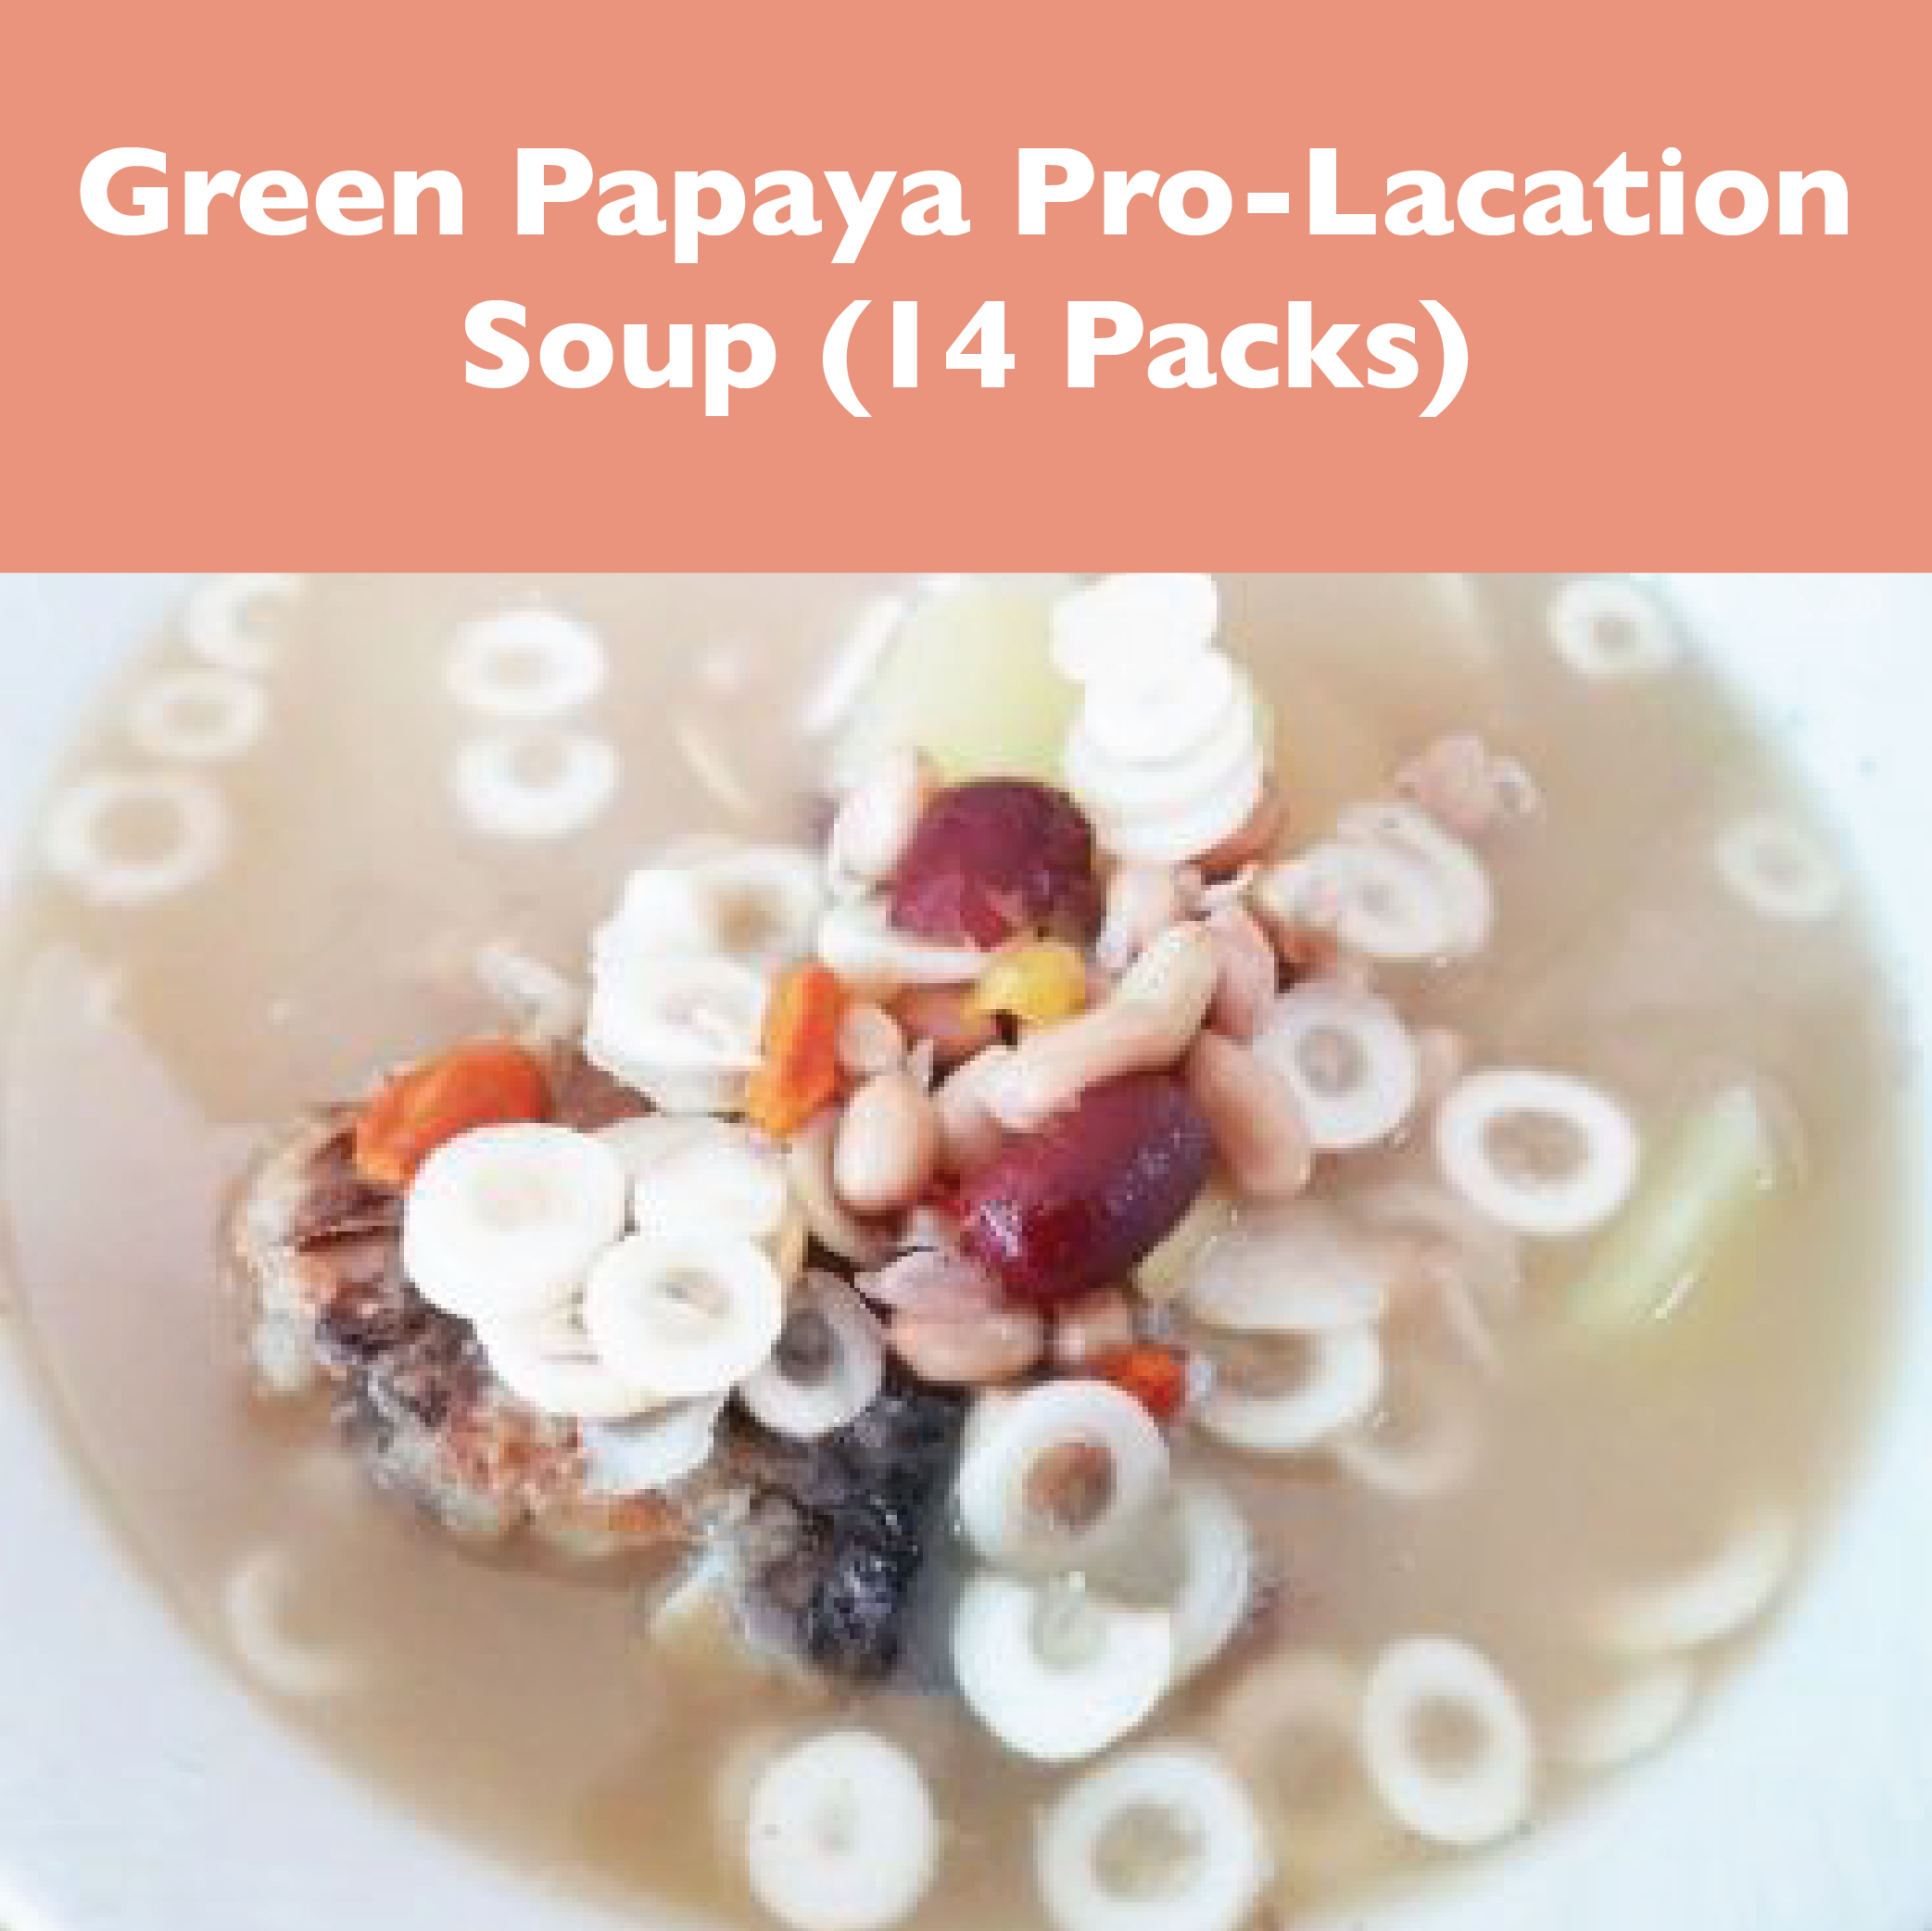 Madam Partum Green Papaya Pro-Lactation Soup Bundle (Pack of 14)